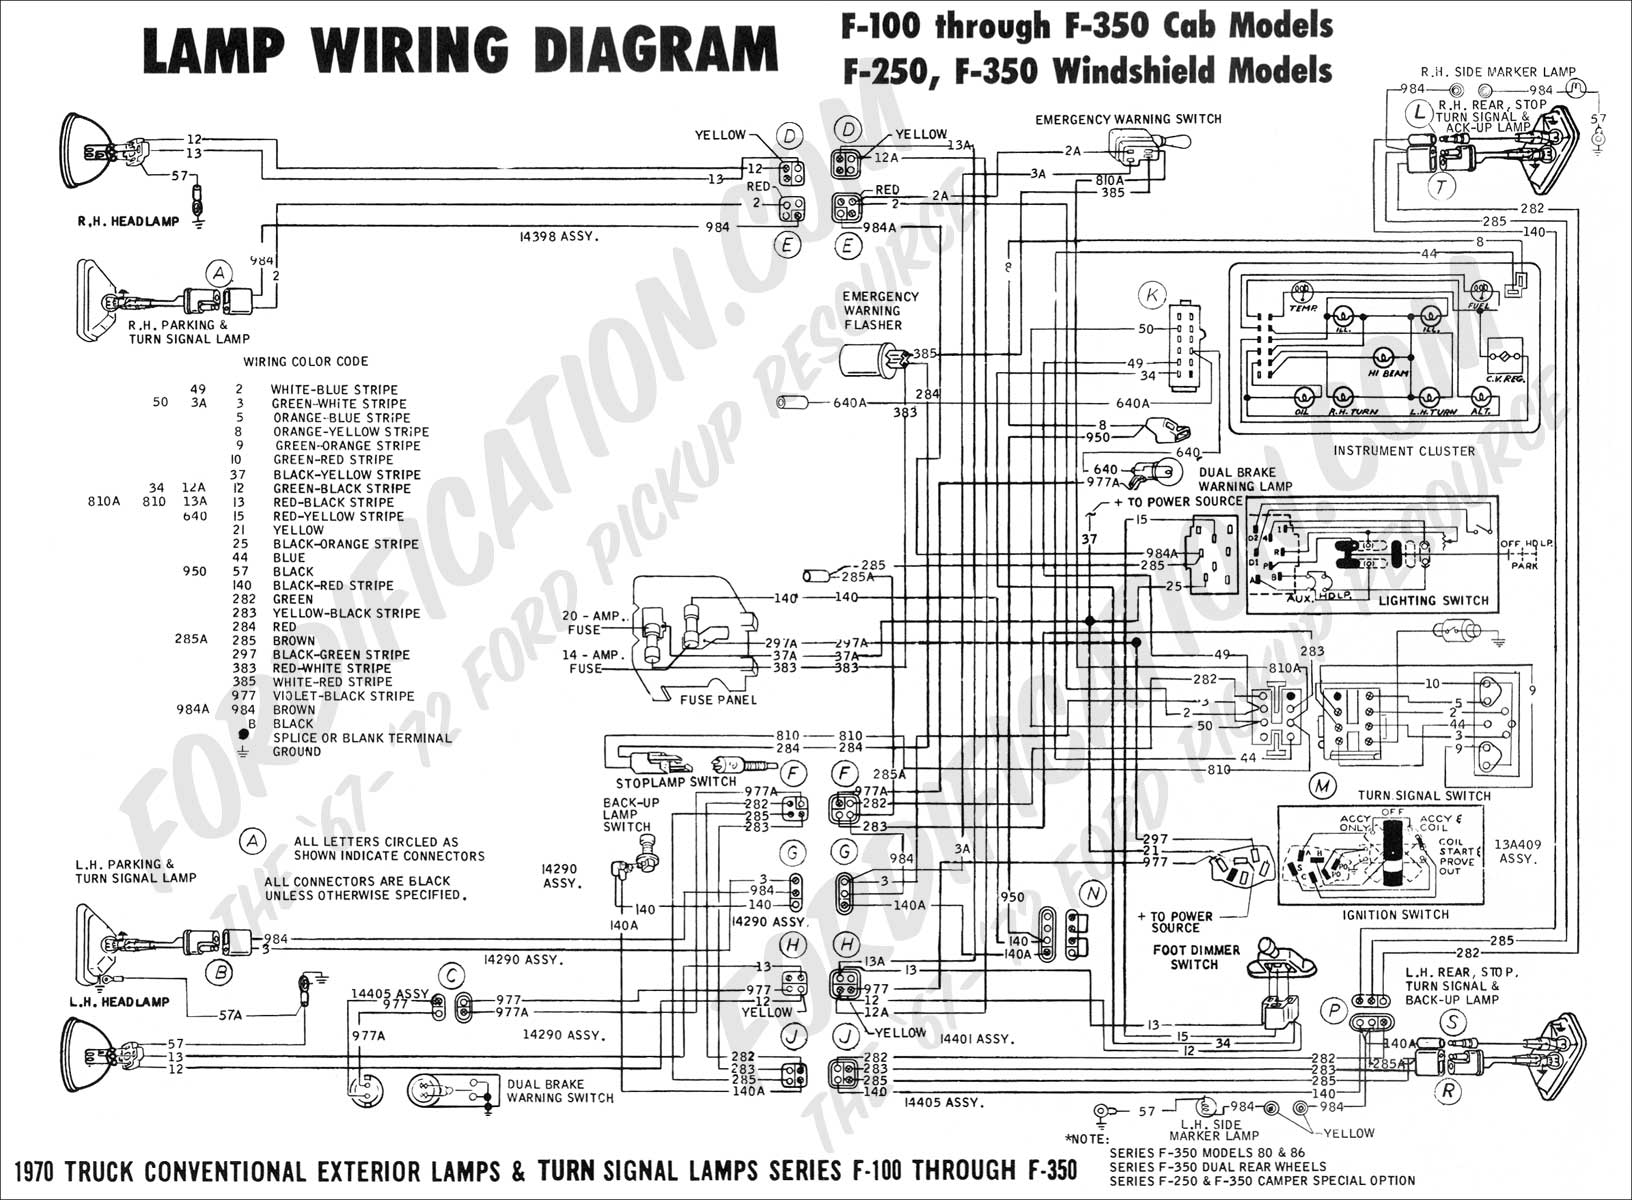 wiring diagram_70ext lights01 ford truck technical drawings and schematics section h wiring ford e250 wiring diagram trailer at bakdesigns.co